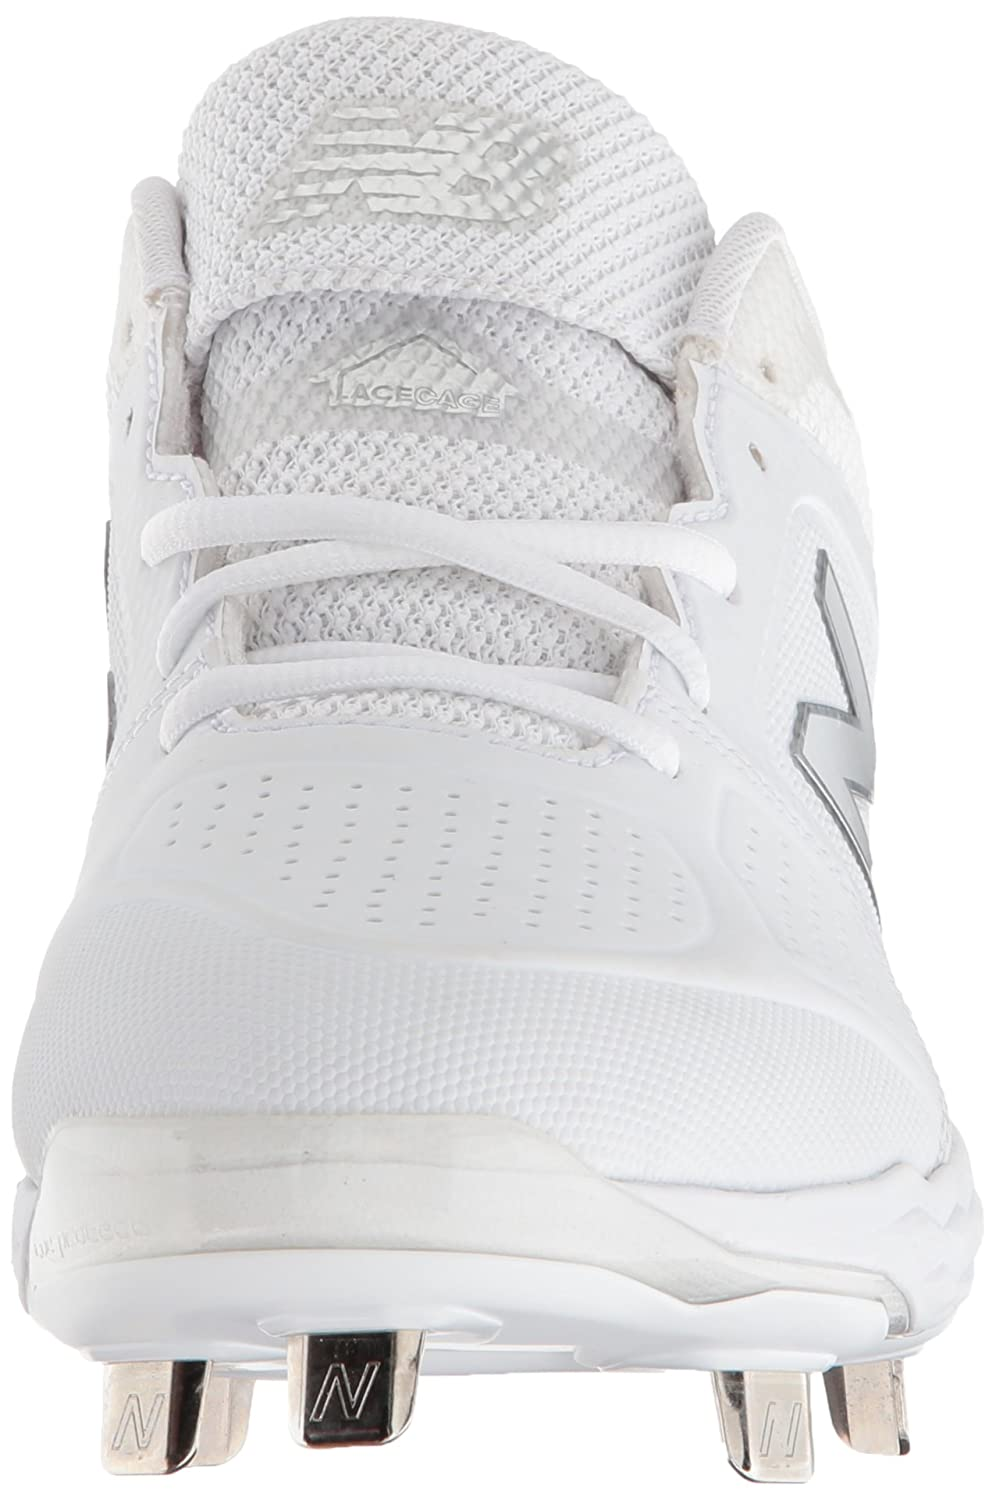 New Balance Softball Women's Velo V1 Metal Softball Balance Shoe B075R7J4D3 9.5 D US|White/White 87d881